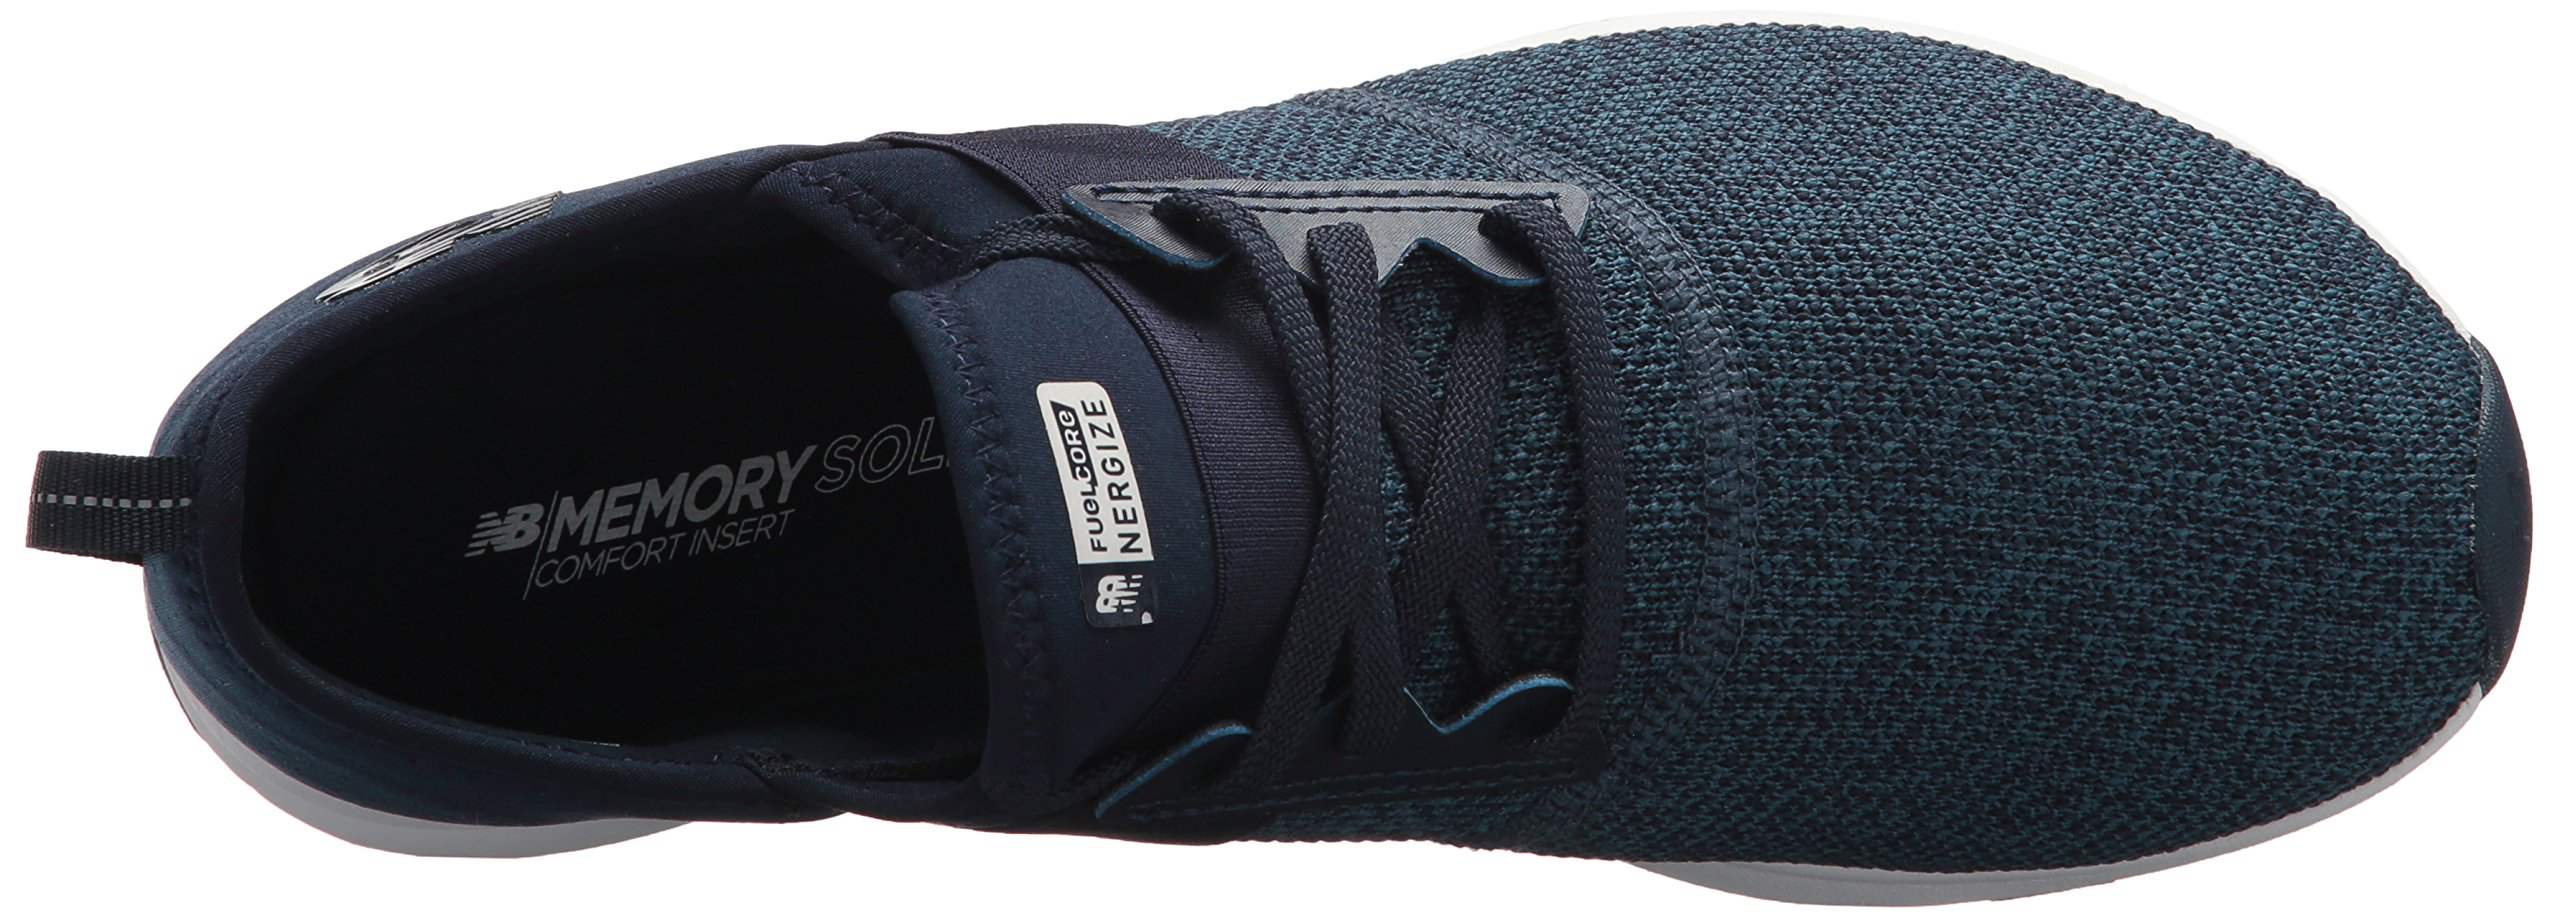 New Balance Women's FuelCore Nergize v1 FuelCore Training Shoe, Navy, 8 D US by New Balance (Image #8)